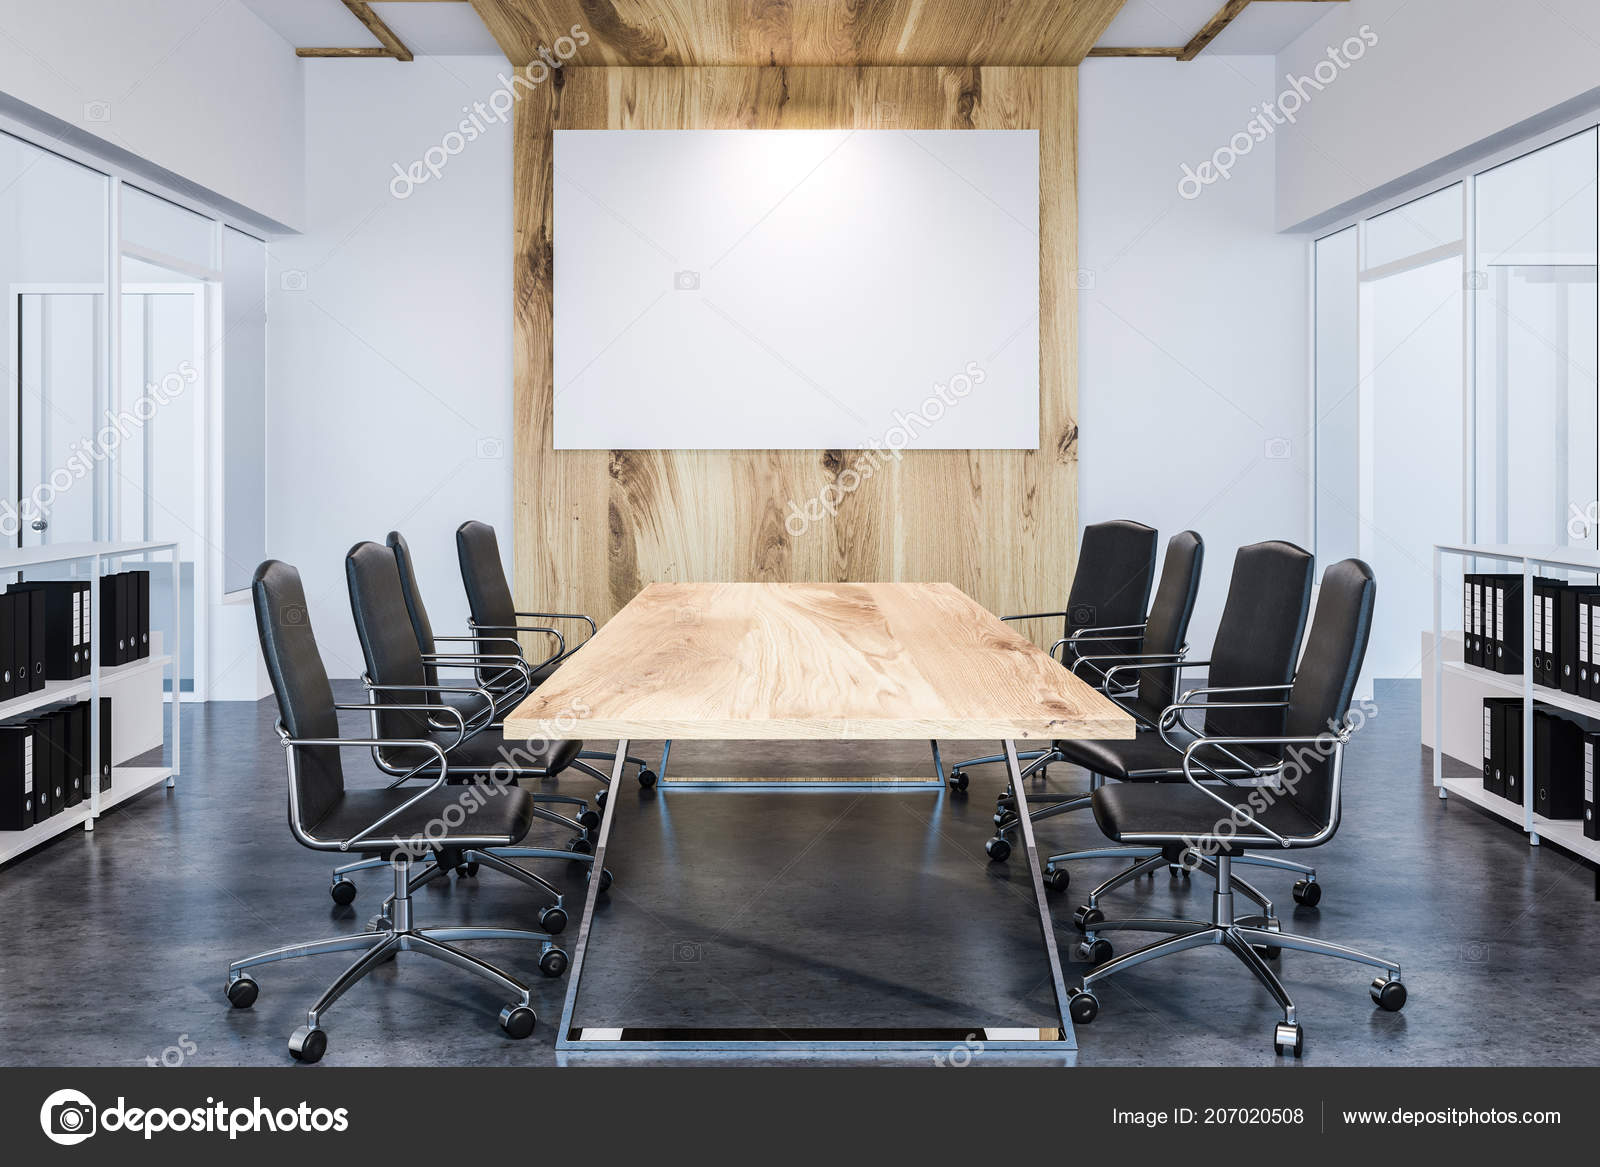 Picture of: Conference Room Interior White Walls Long Wooden Table Black Chairs Stock Photo C Denisismagilov 207020508